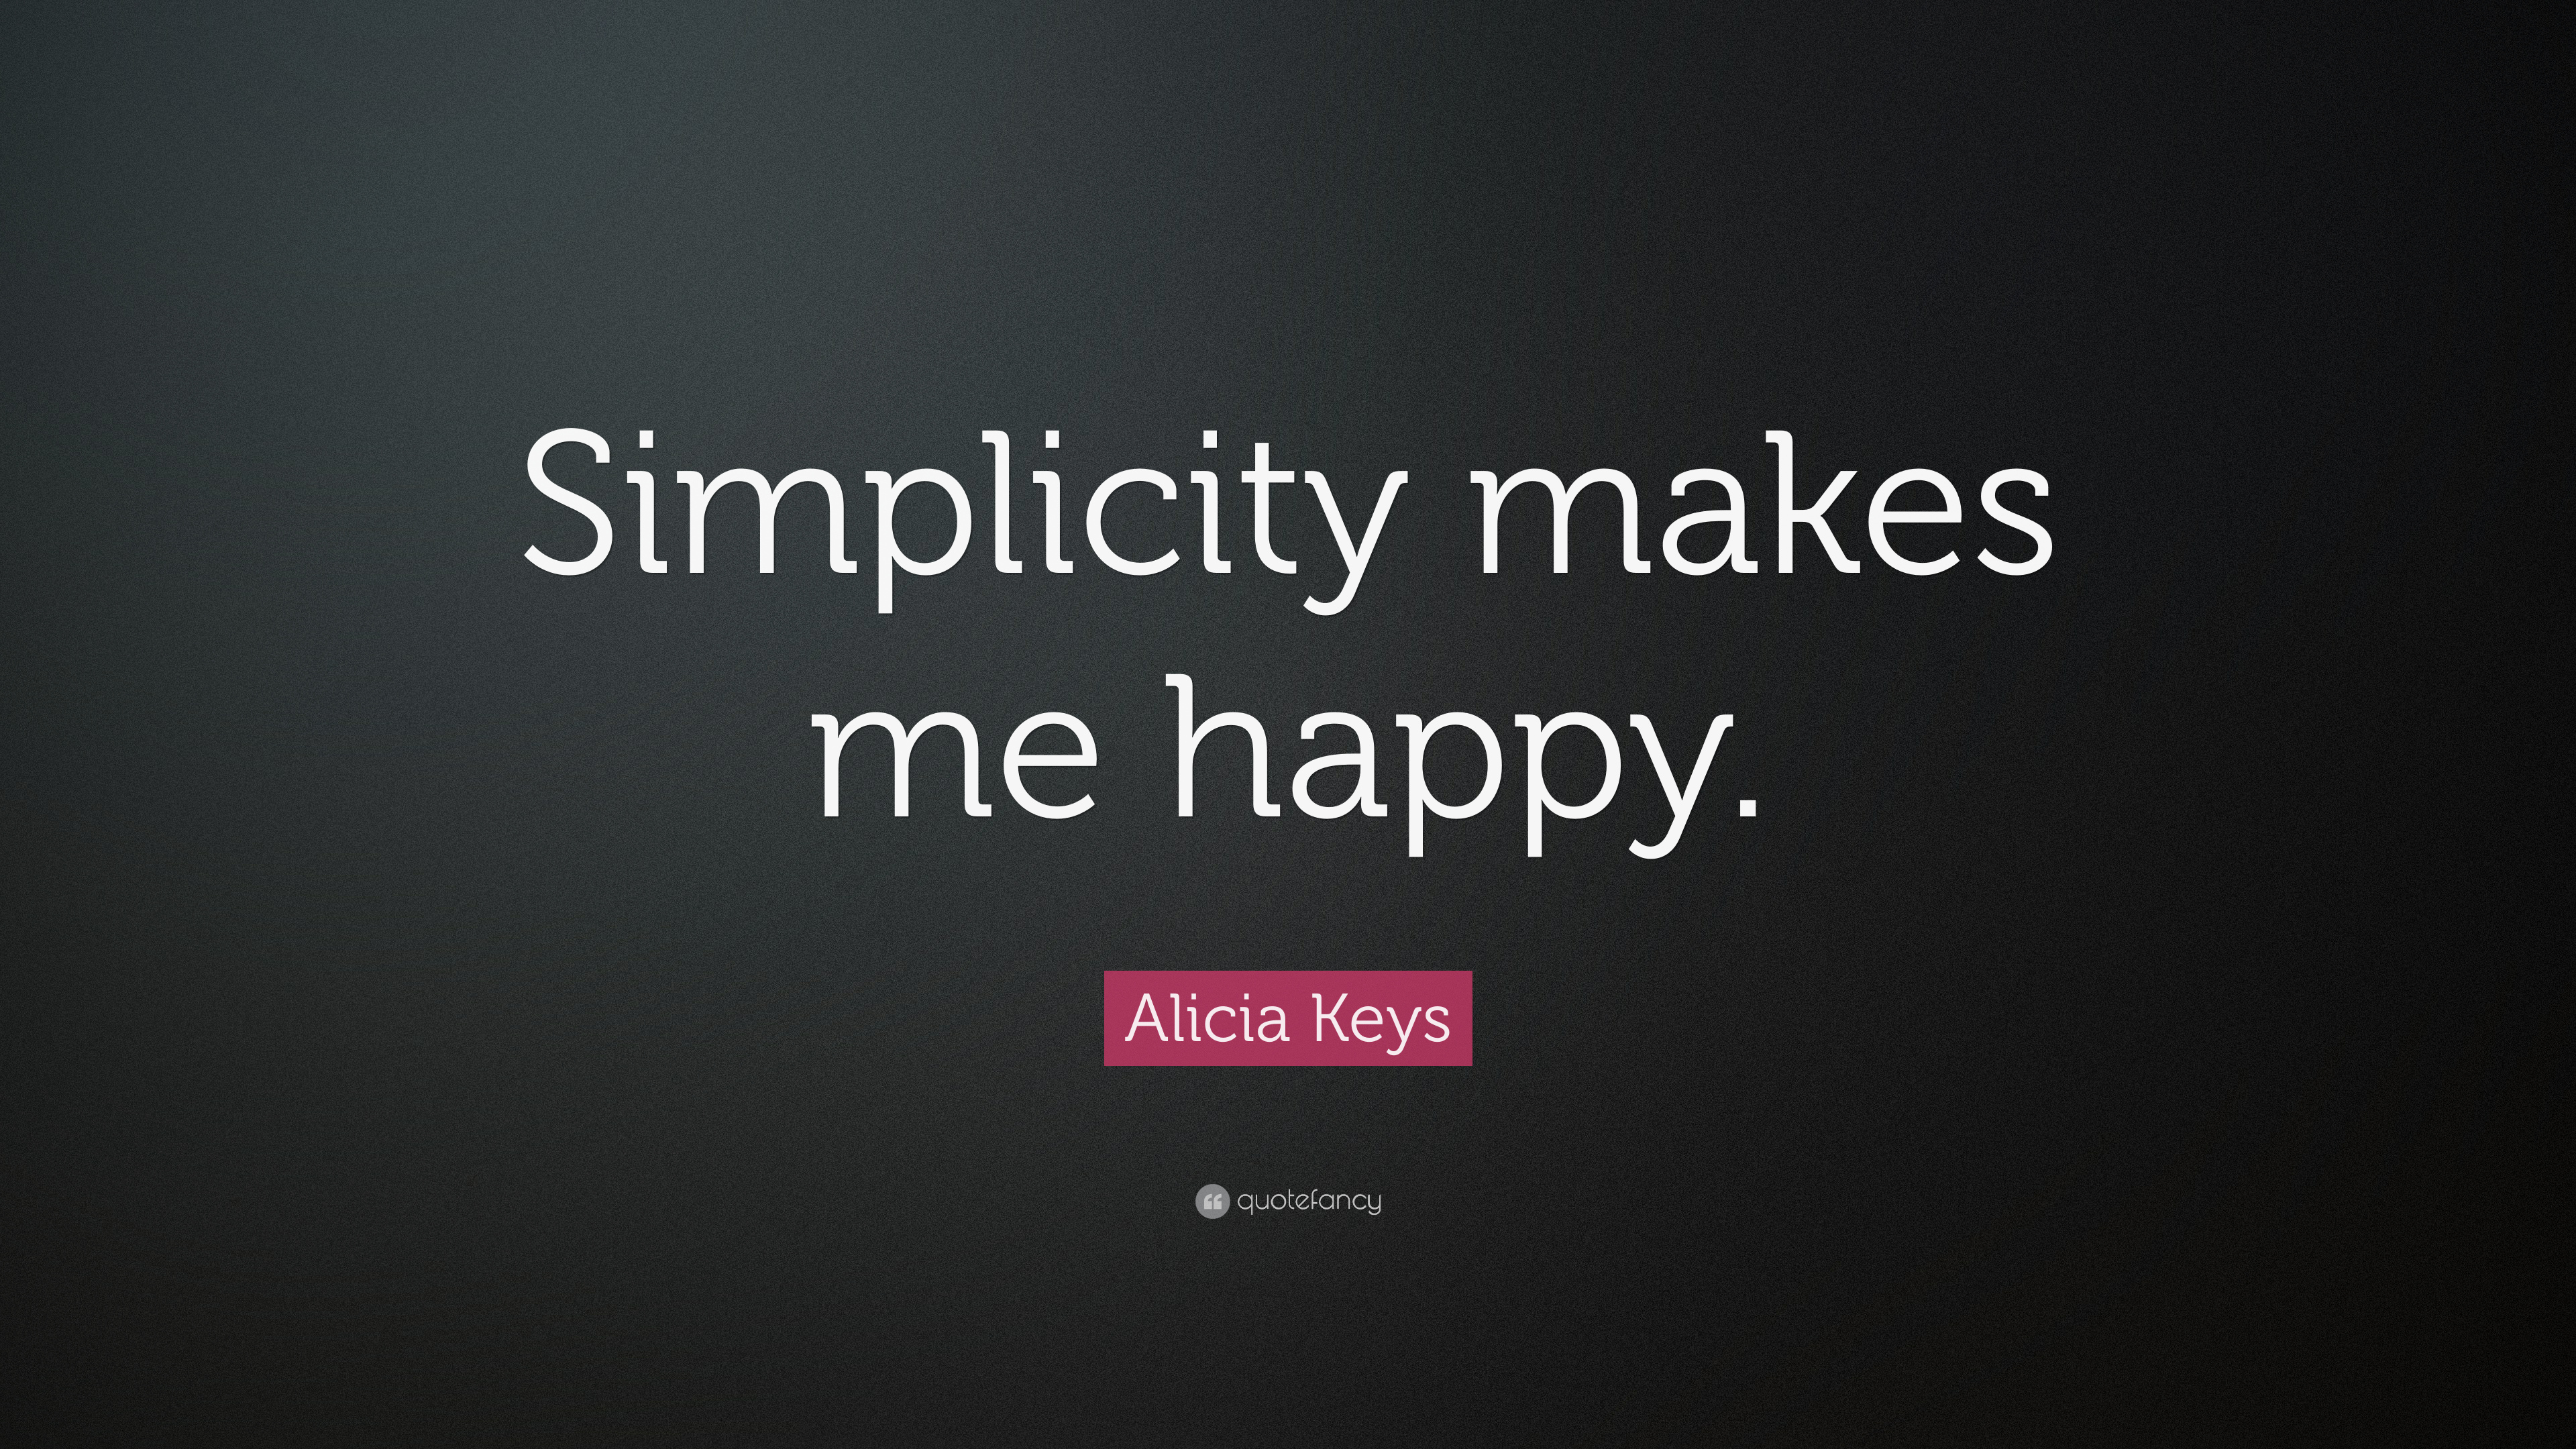 Image of: Aviva Alicia Keys Quote simplicity Makes Me Happy Quotemehappycom Alicia Keys Quote simplicity Makes Me Happy 7 Wallpapers